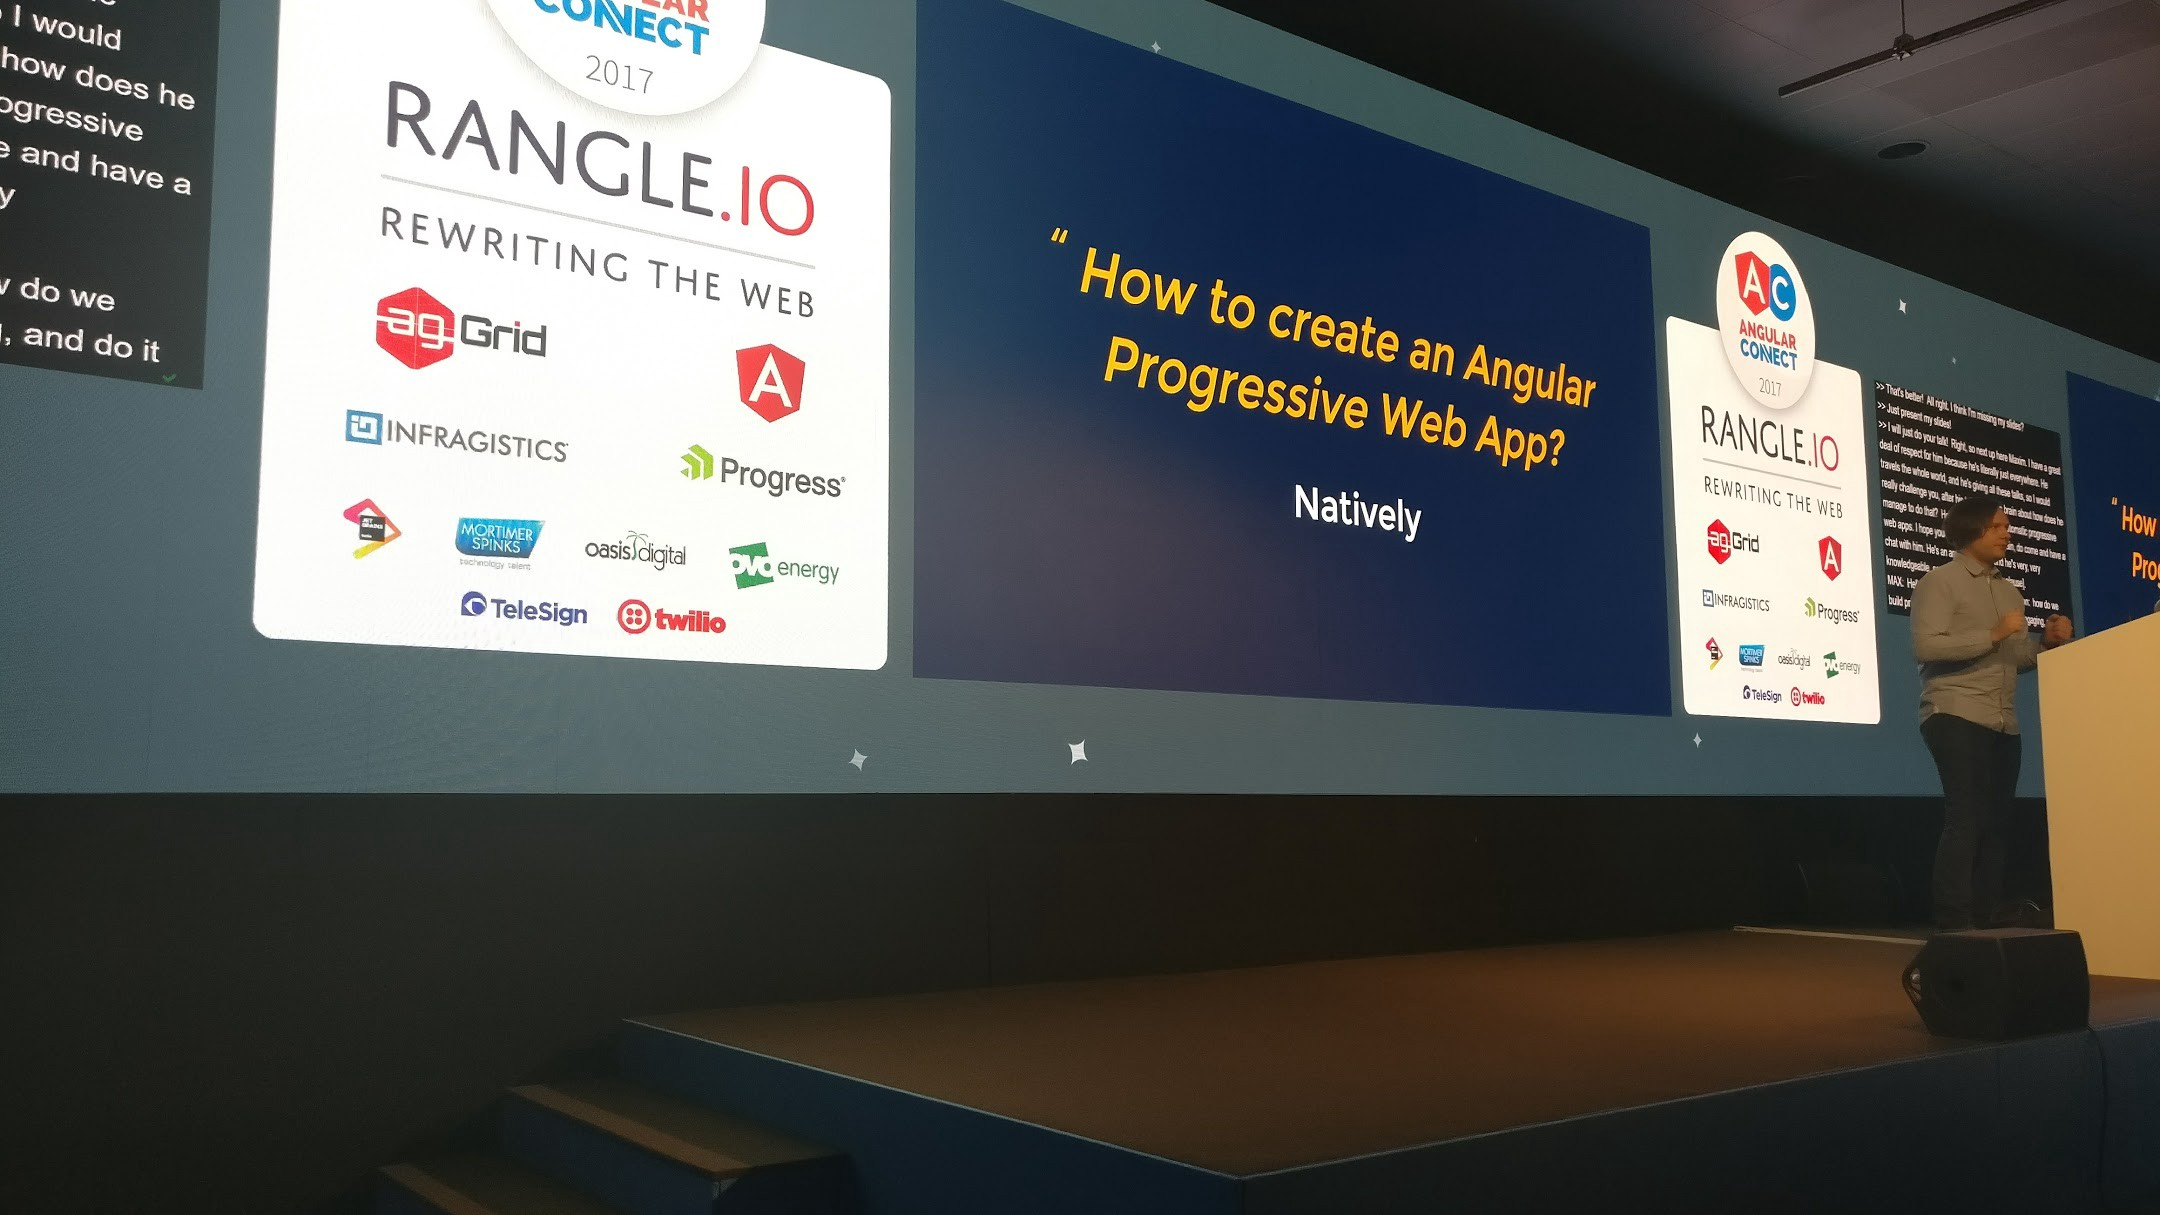 I got invited to Angular Connect, this is my story